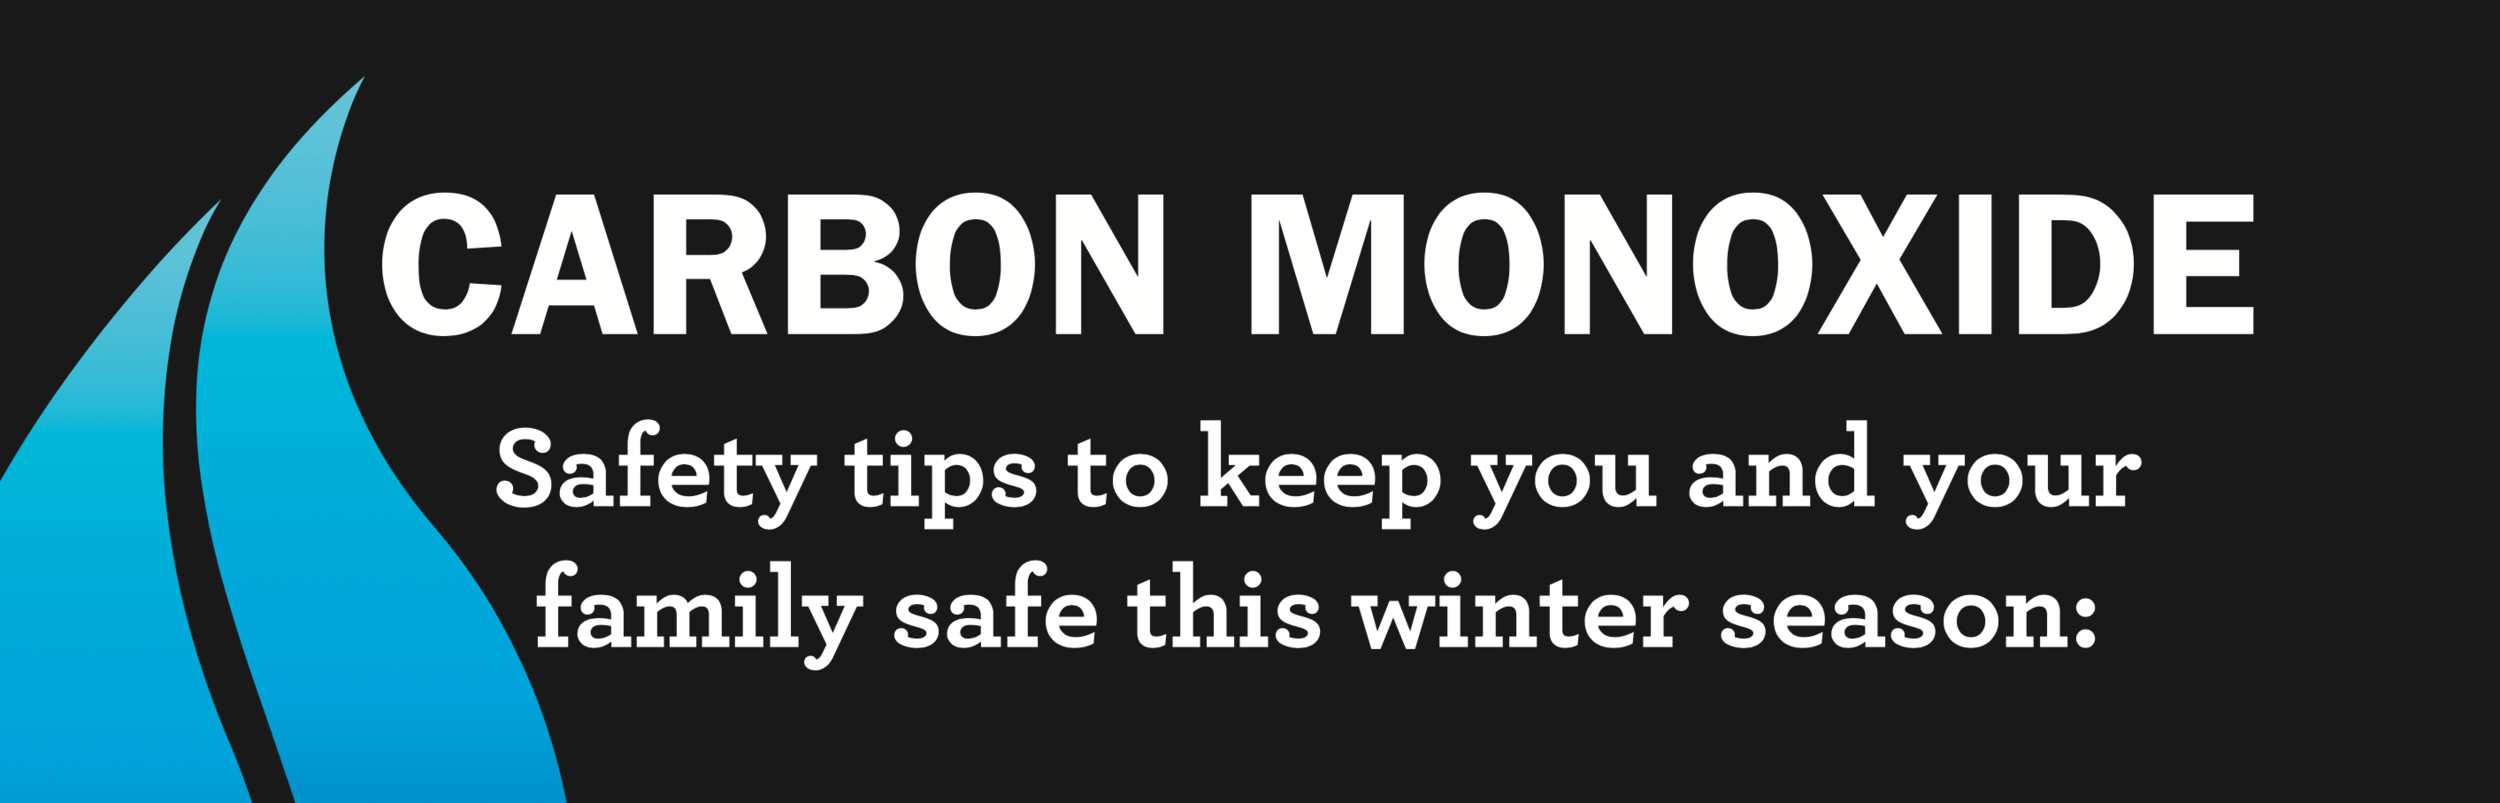 Carbon monoxide is a colorless,odorless, poisonous gas. It is produced by any improperly operating fuel-burning appliance in your home. Keep your family safe this winter.  Learn more